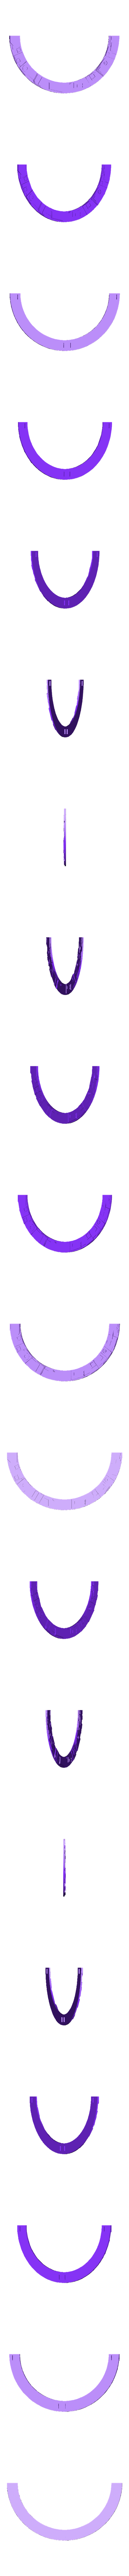 Outer_Ring_2_x4.stl Download free STL file Timeless Life Boat with Spinning Rings • Design to 3D print, Dsk